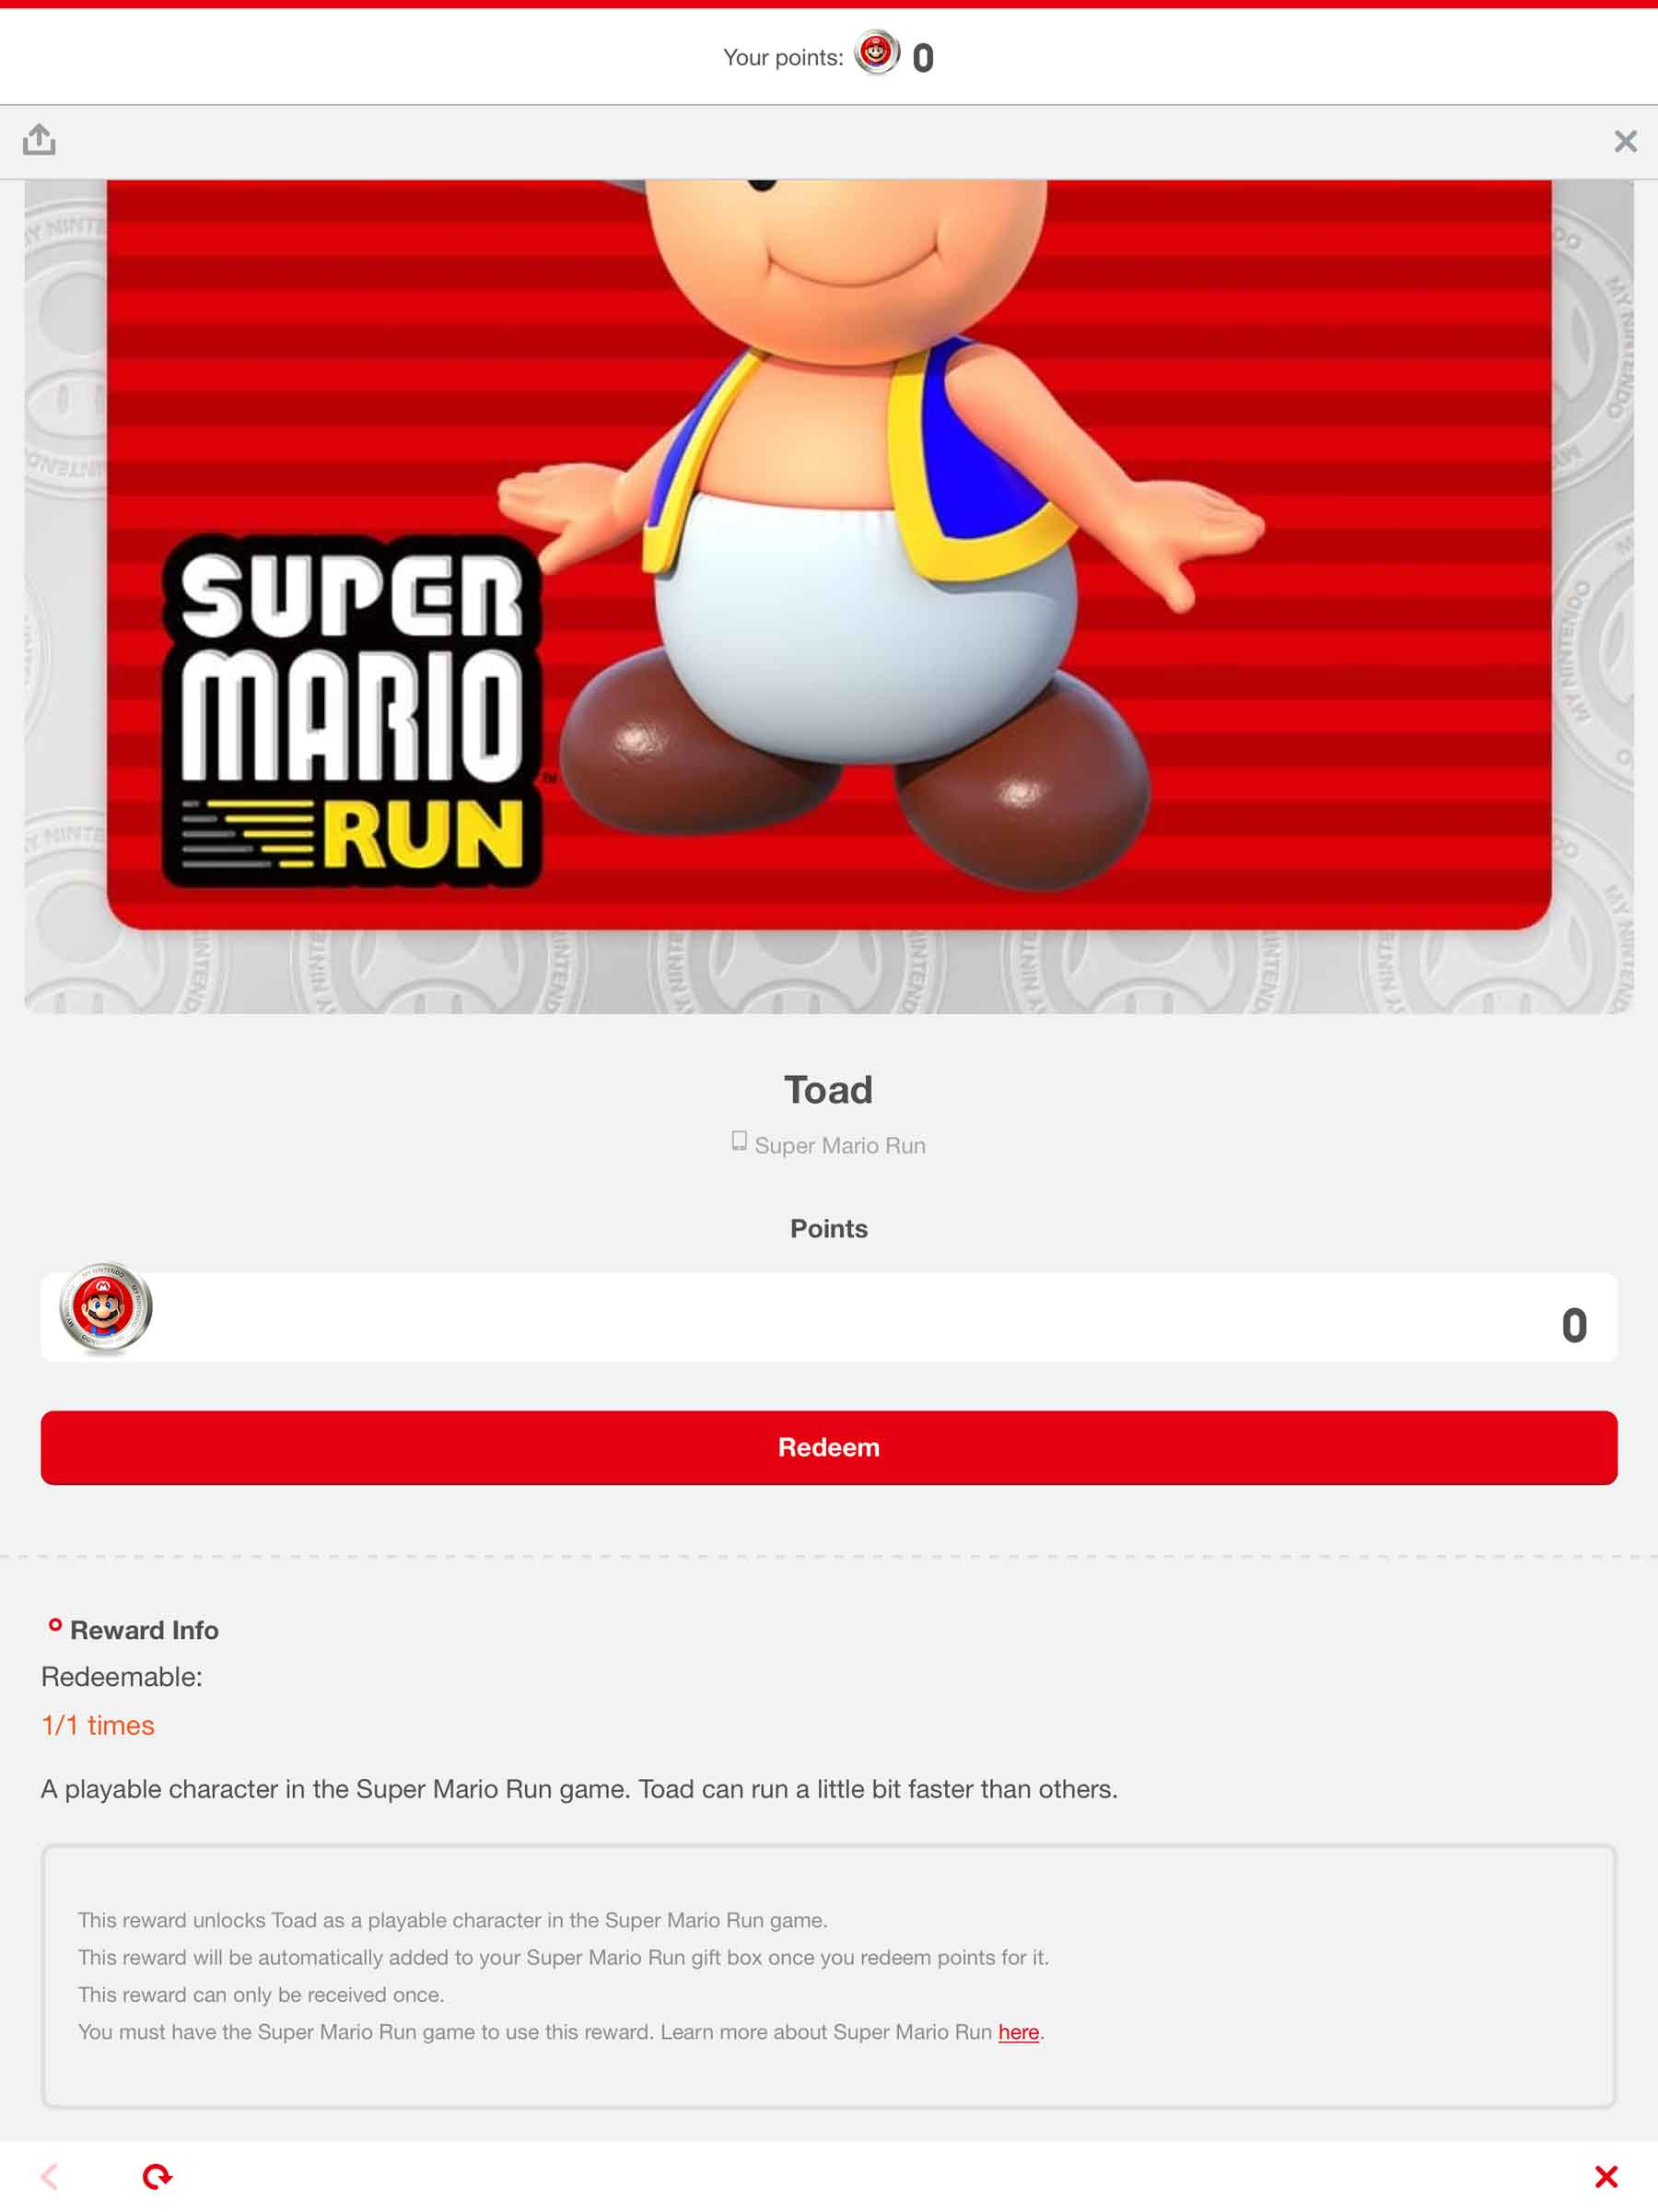 how to get toad in super mario run